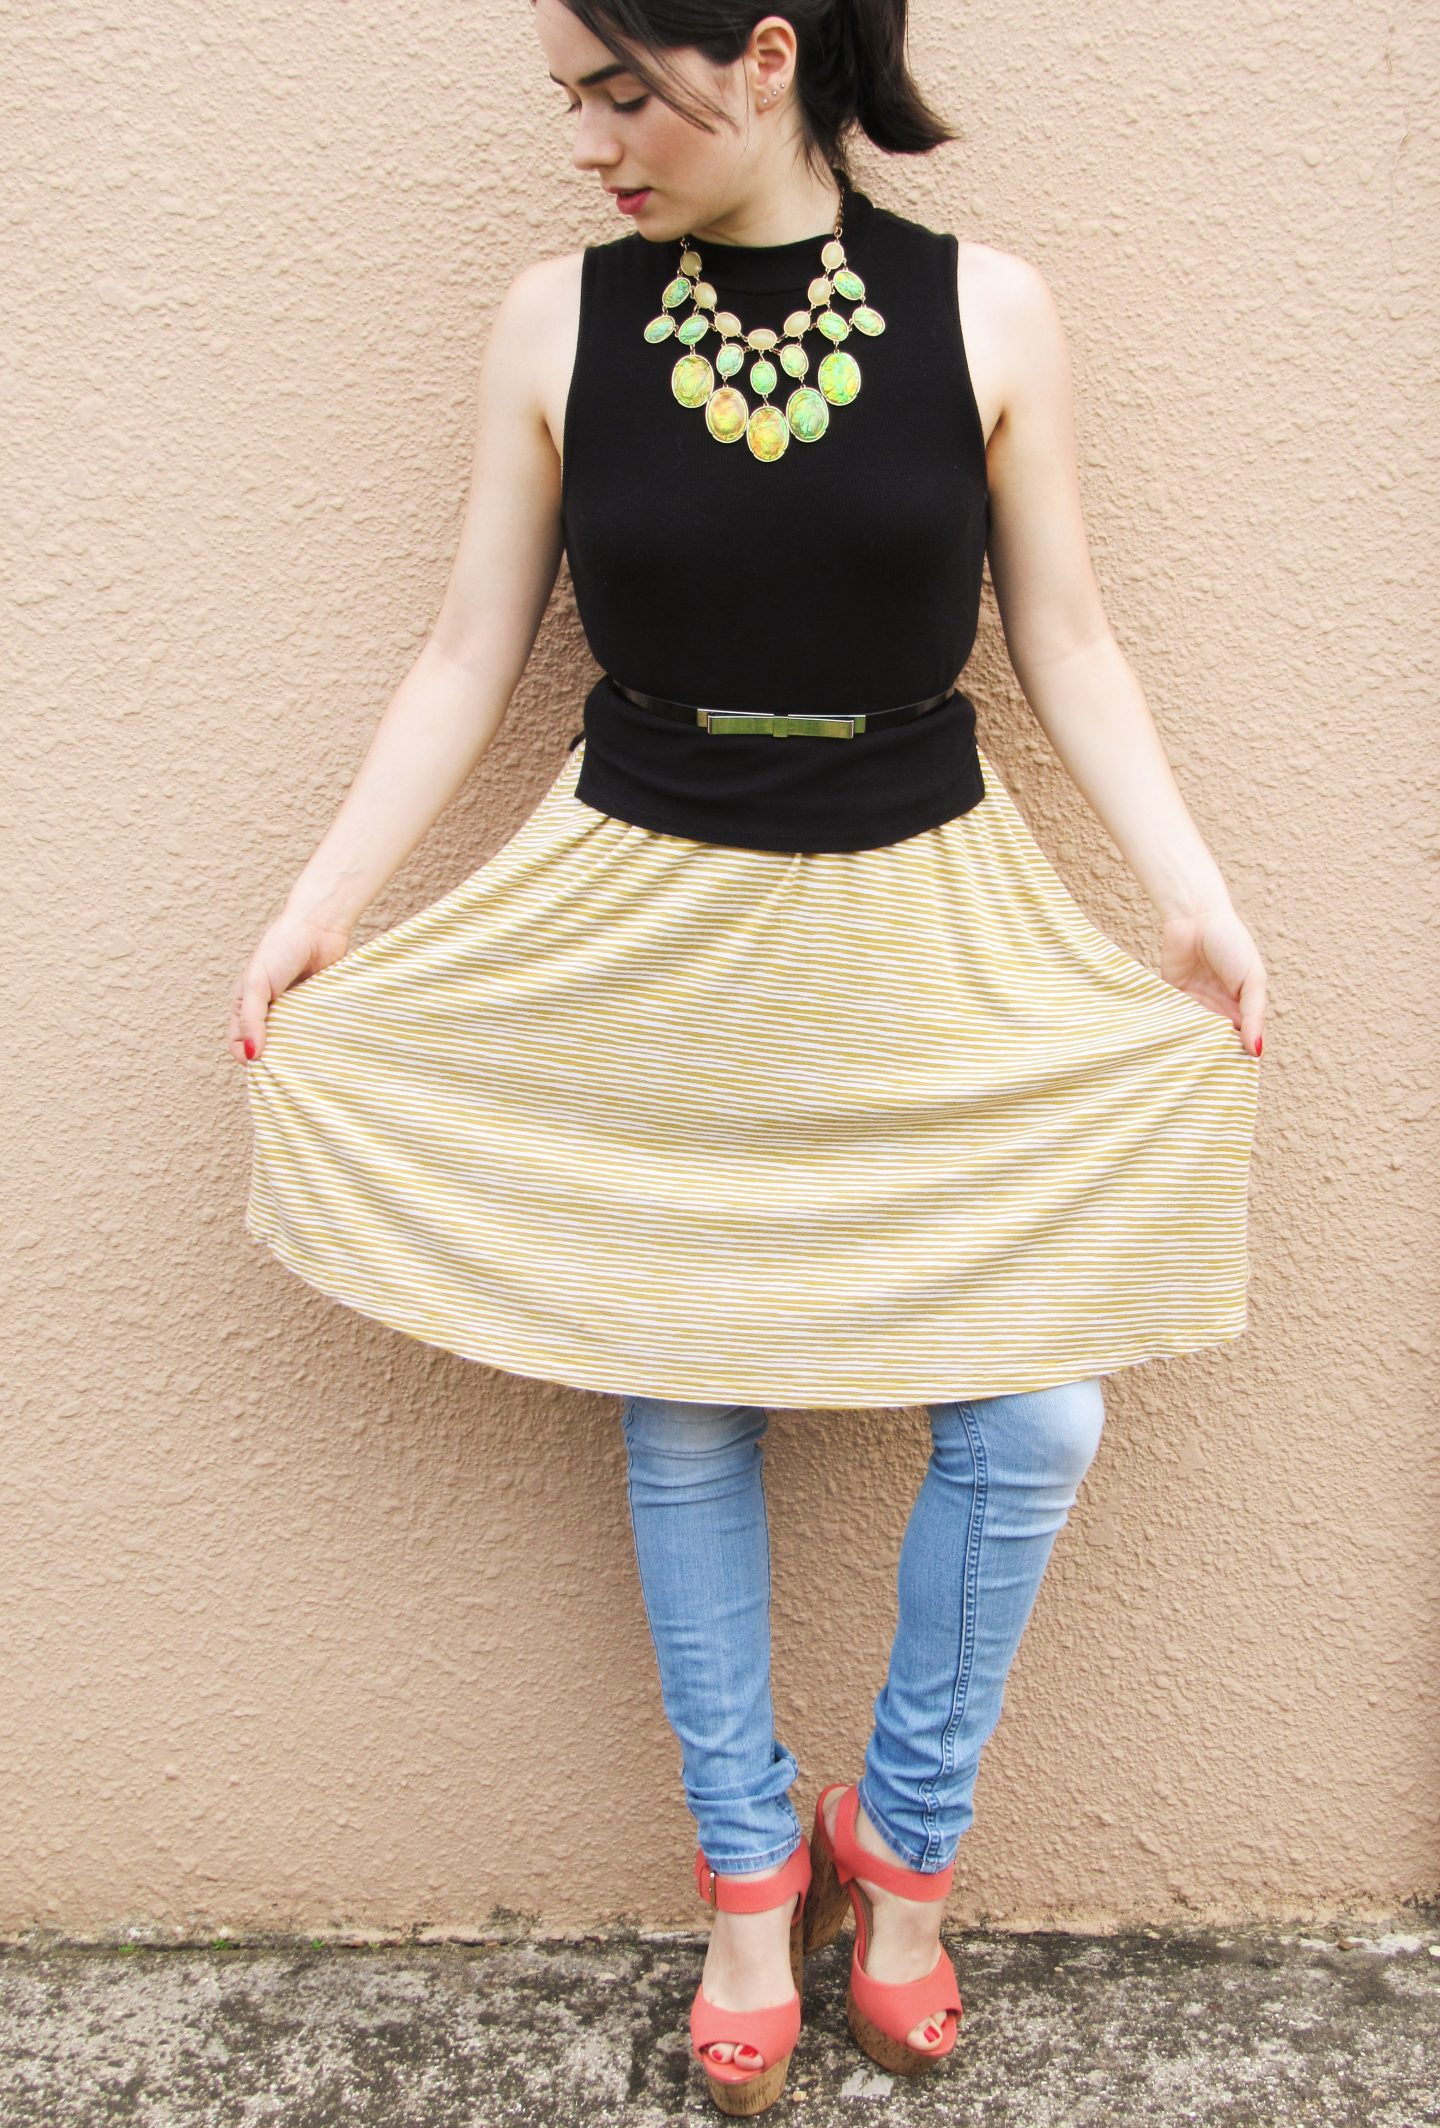 Matching Jeans With Skirts: A Combination Made In Heaven